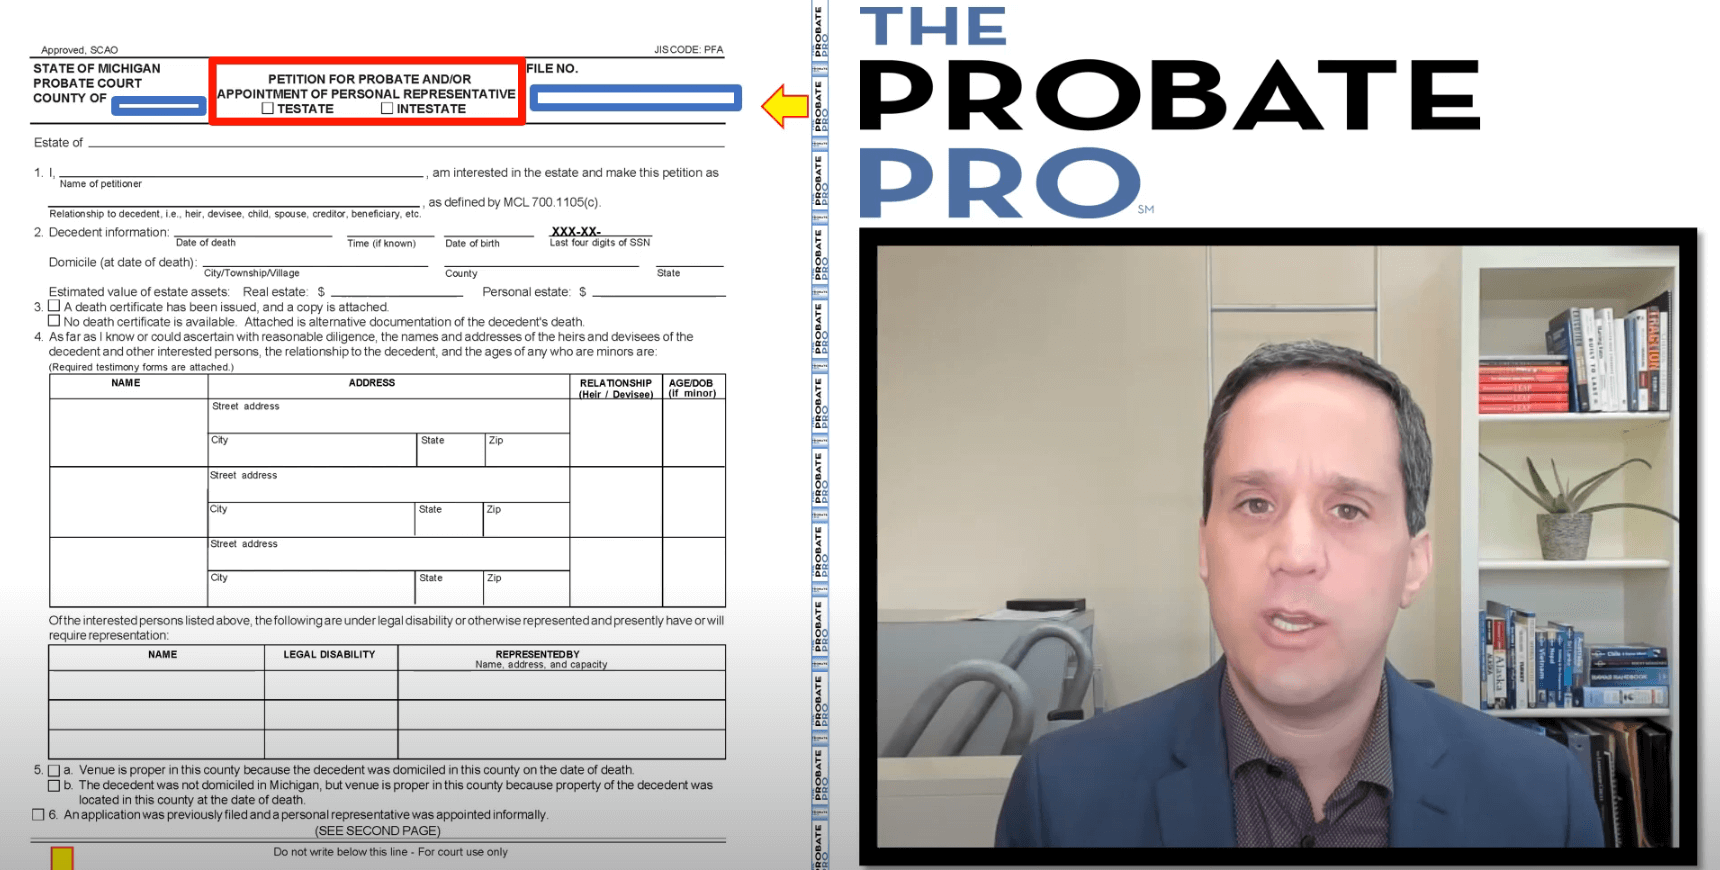 Petition for Probate and Appointment of Personal Representative